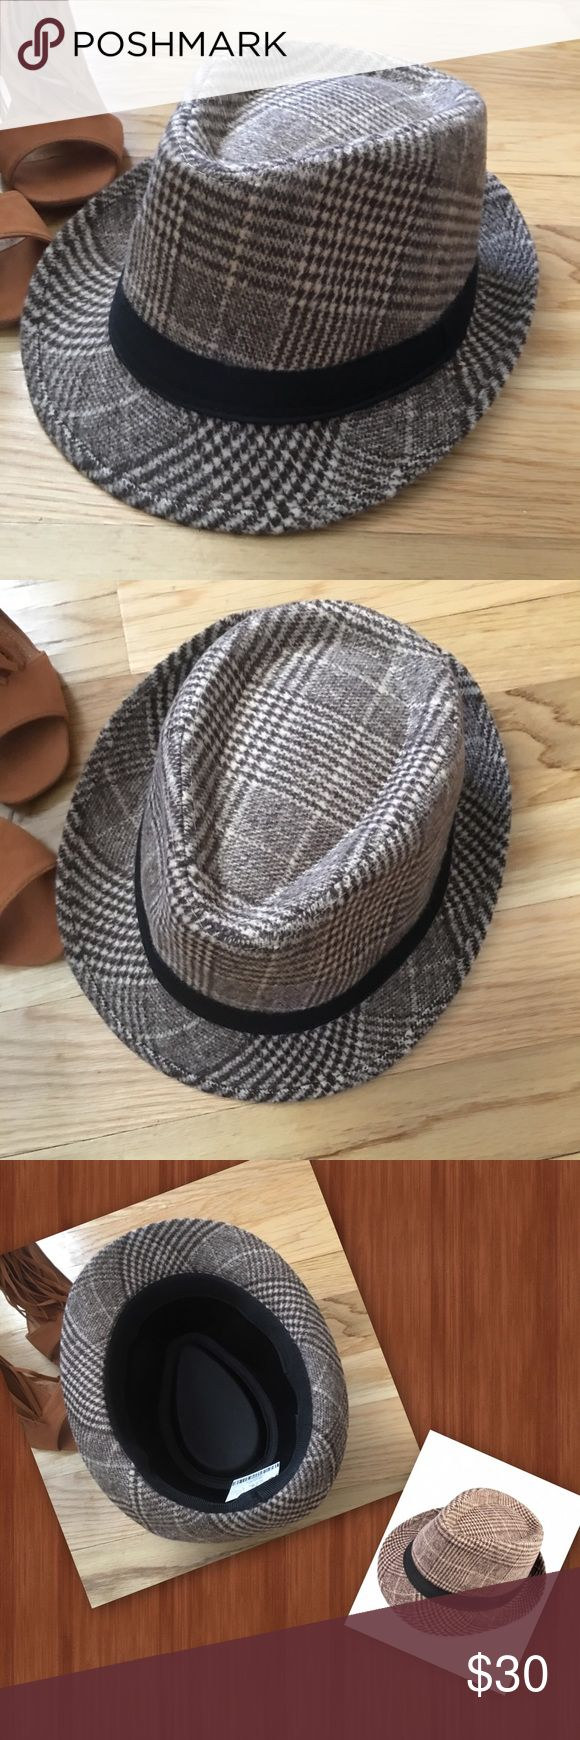 Funky Town Hats off, Hats on. Classy brown plaid Fedora. Wool with a black band. Dress up or casual with this choice trendsetter piece. It's perfect! Just add funky shoes as Kim Kardashian suggests and you're street style ready for funky town. Accessories Hats